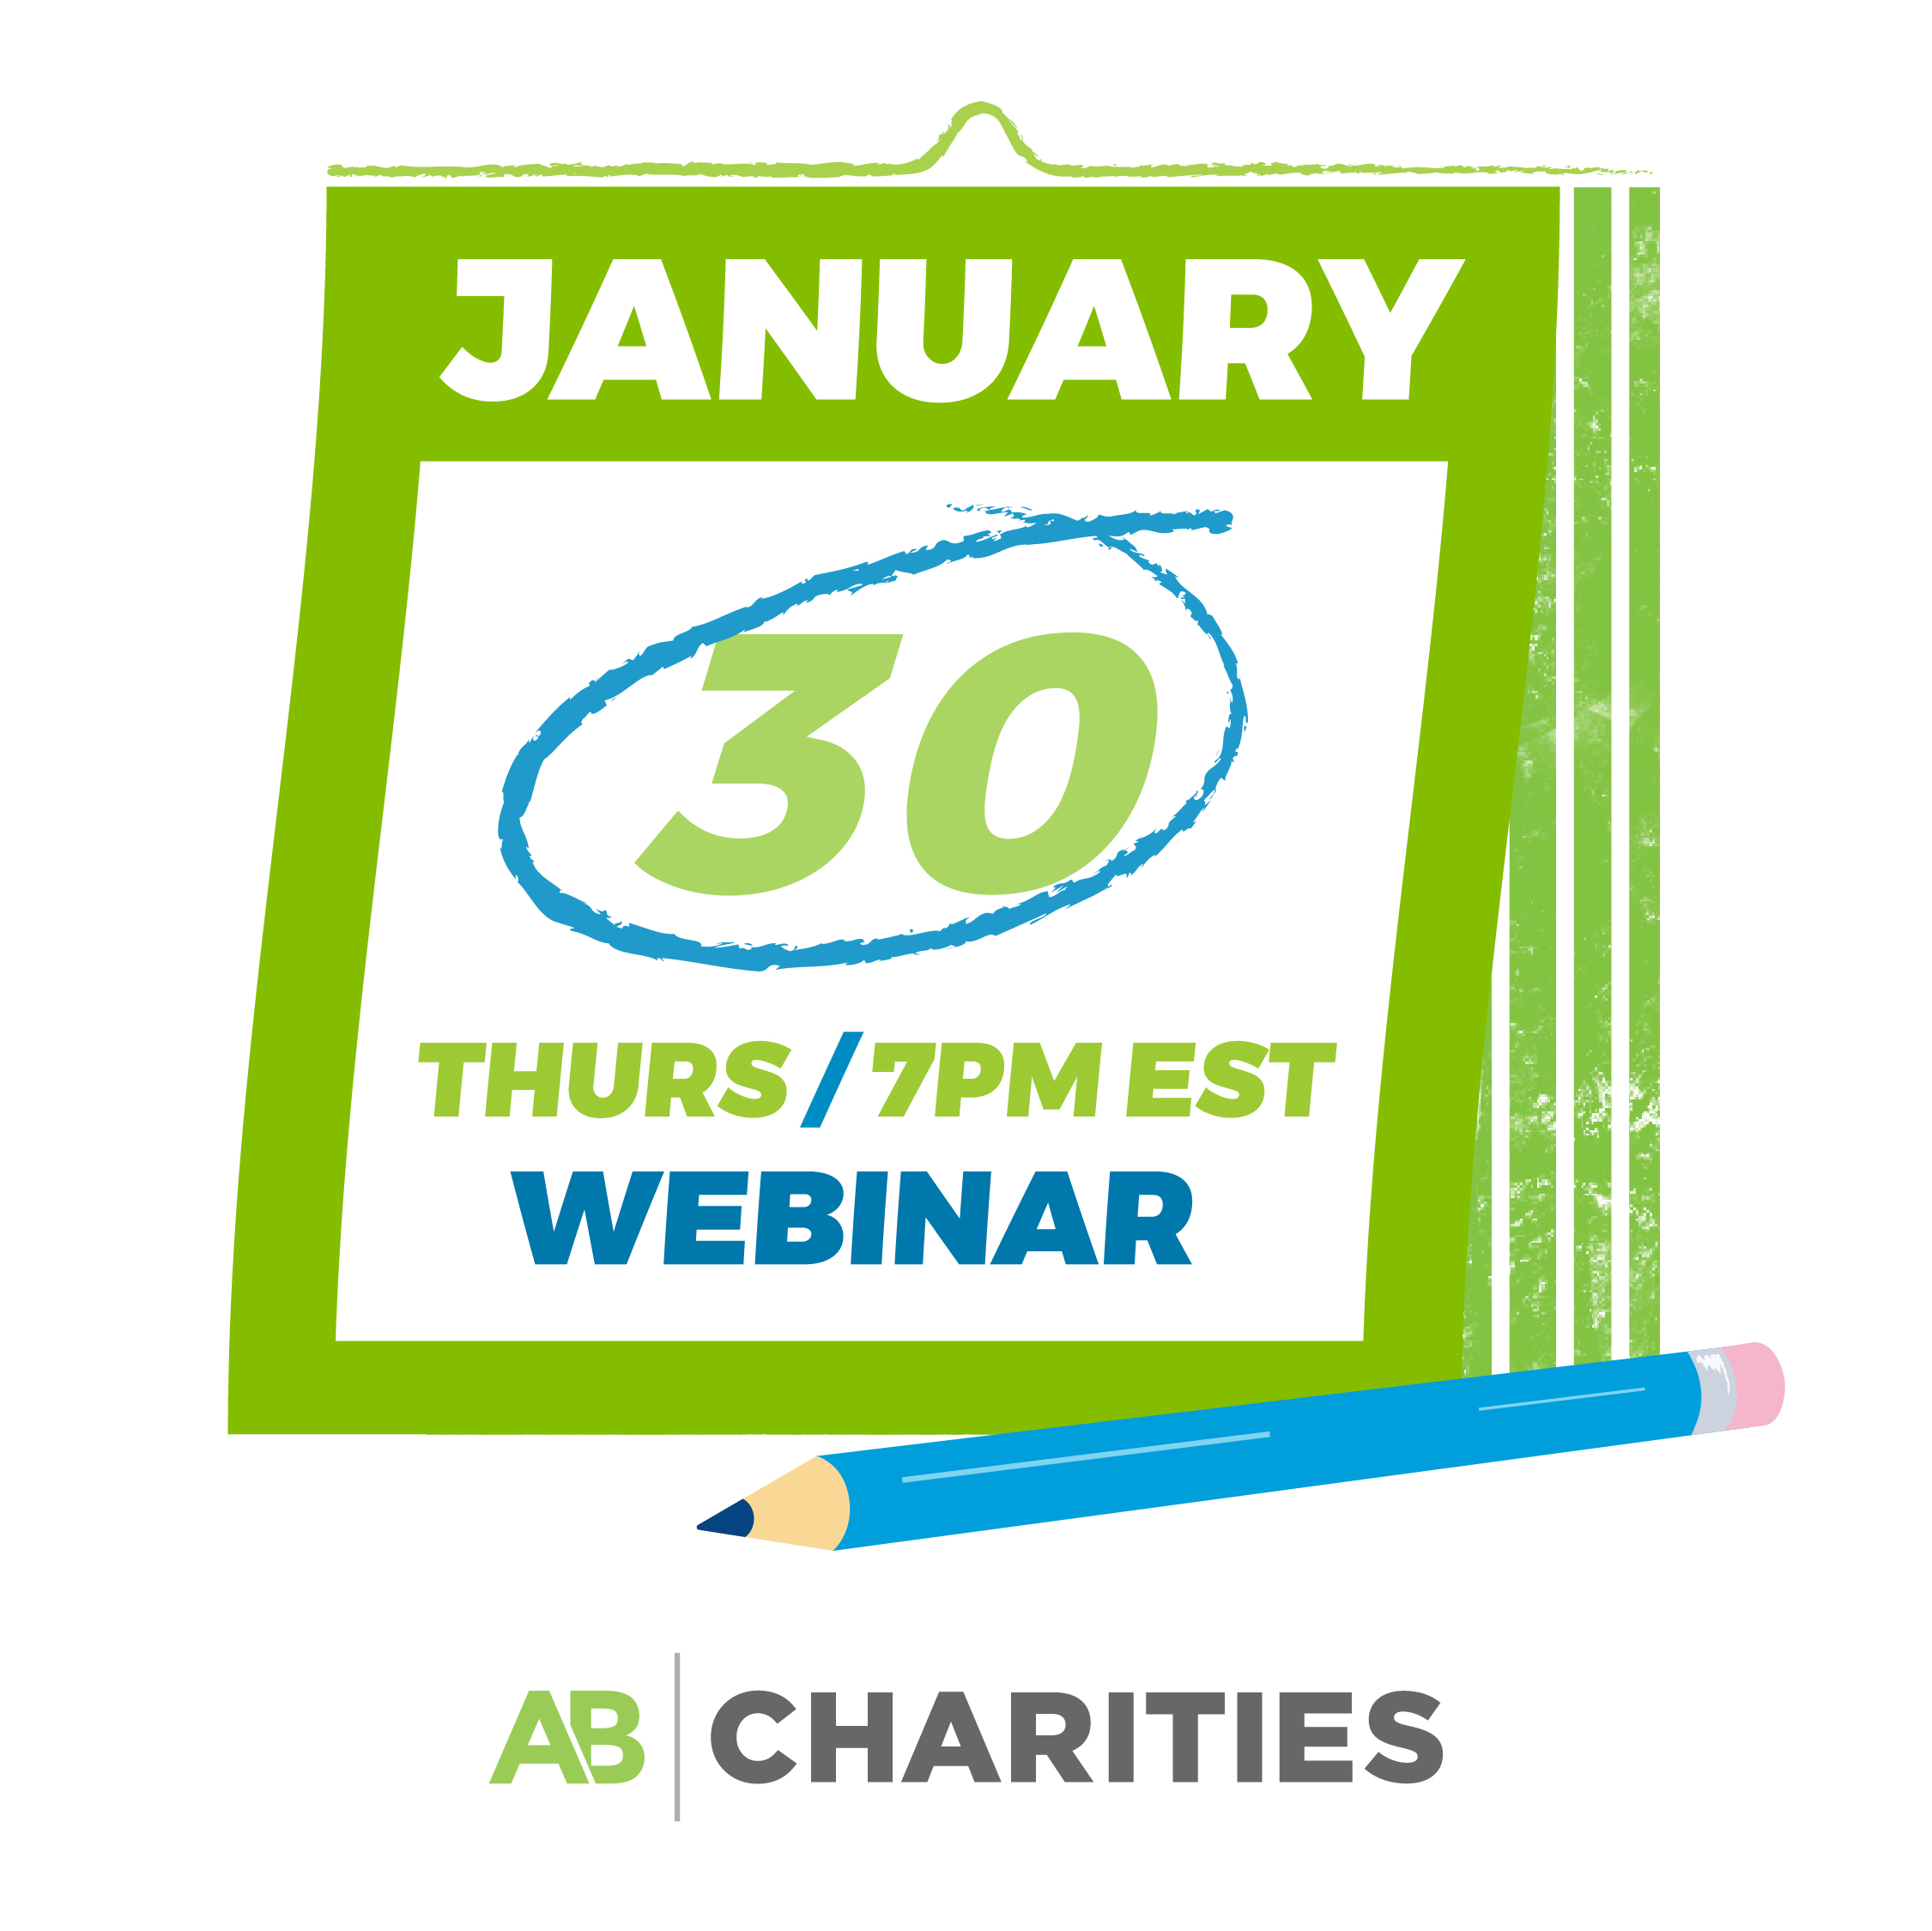 AB Charities' webinar begins on January 30, at 7pm EST